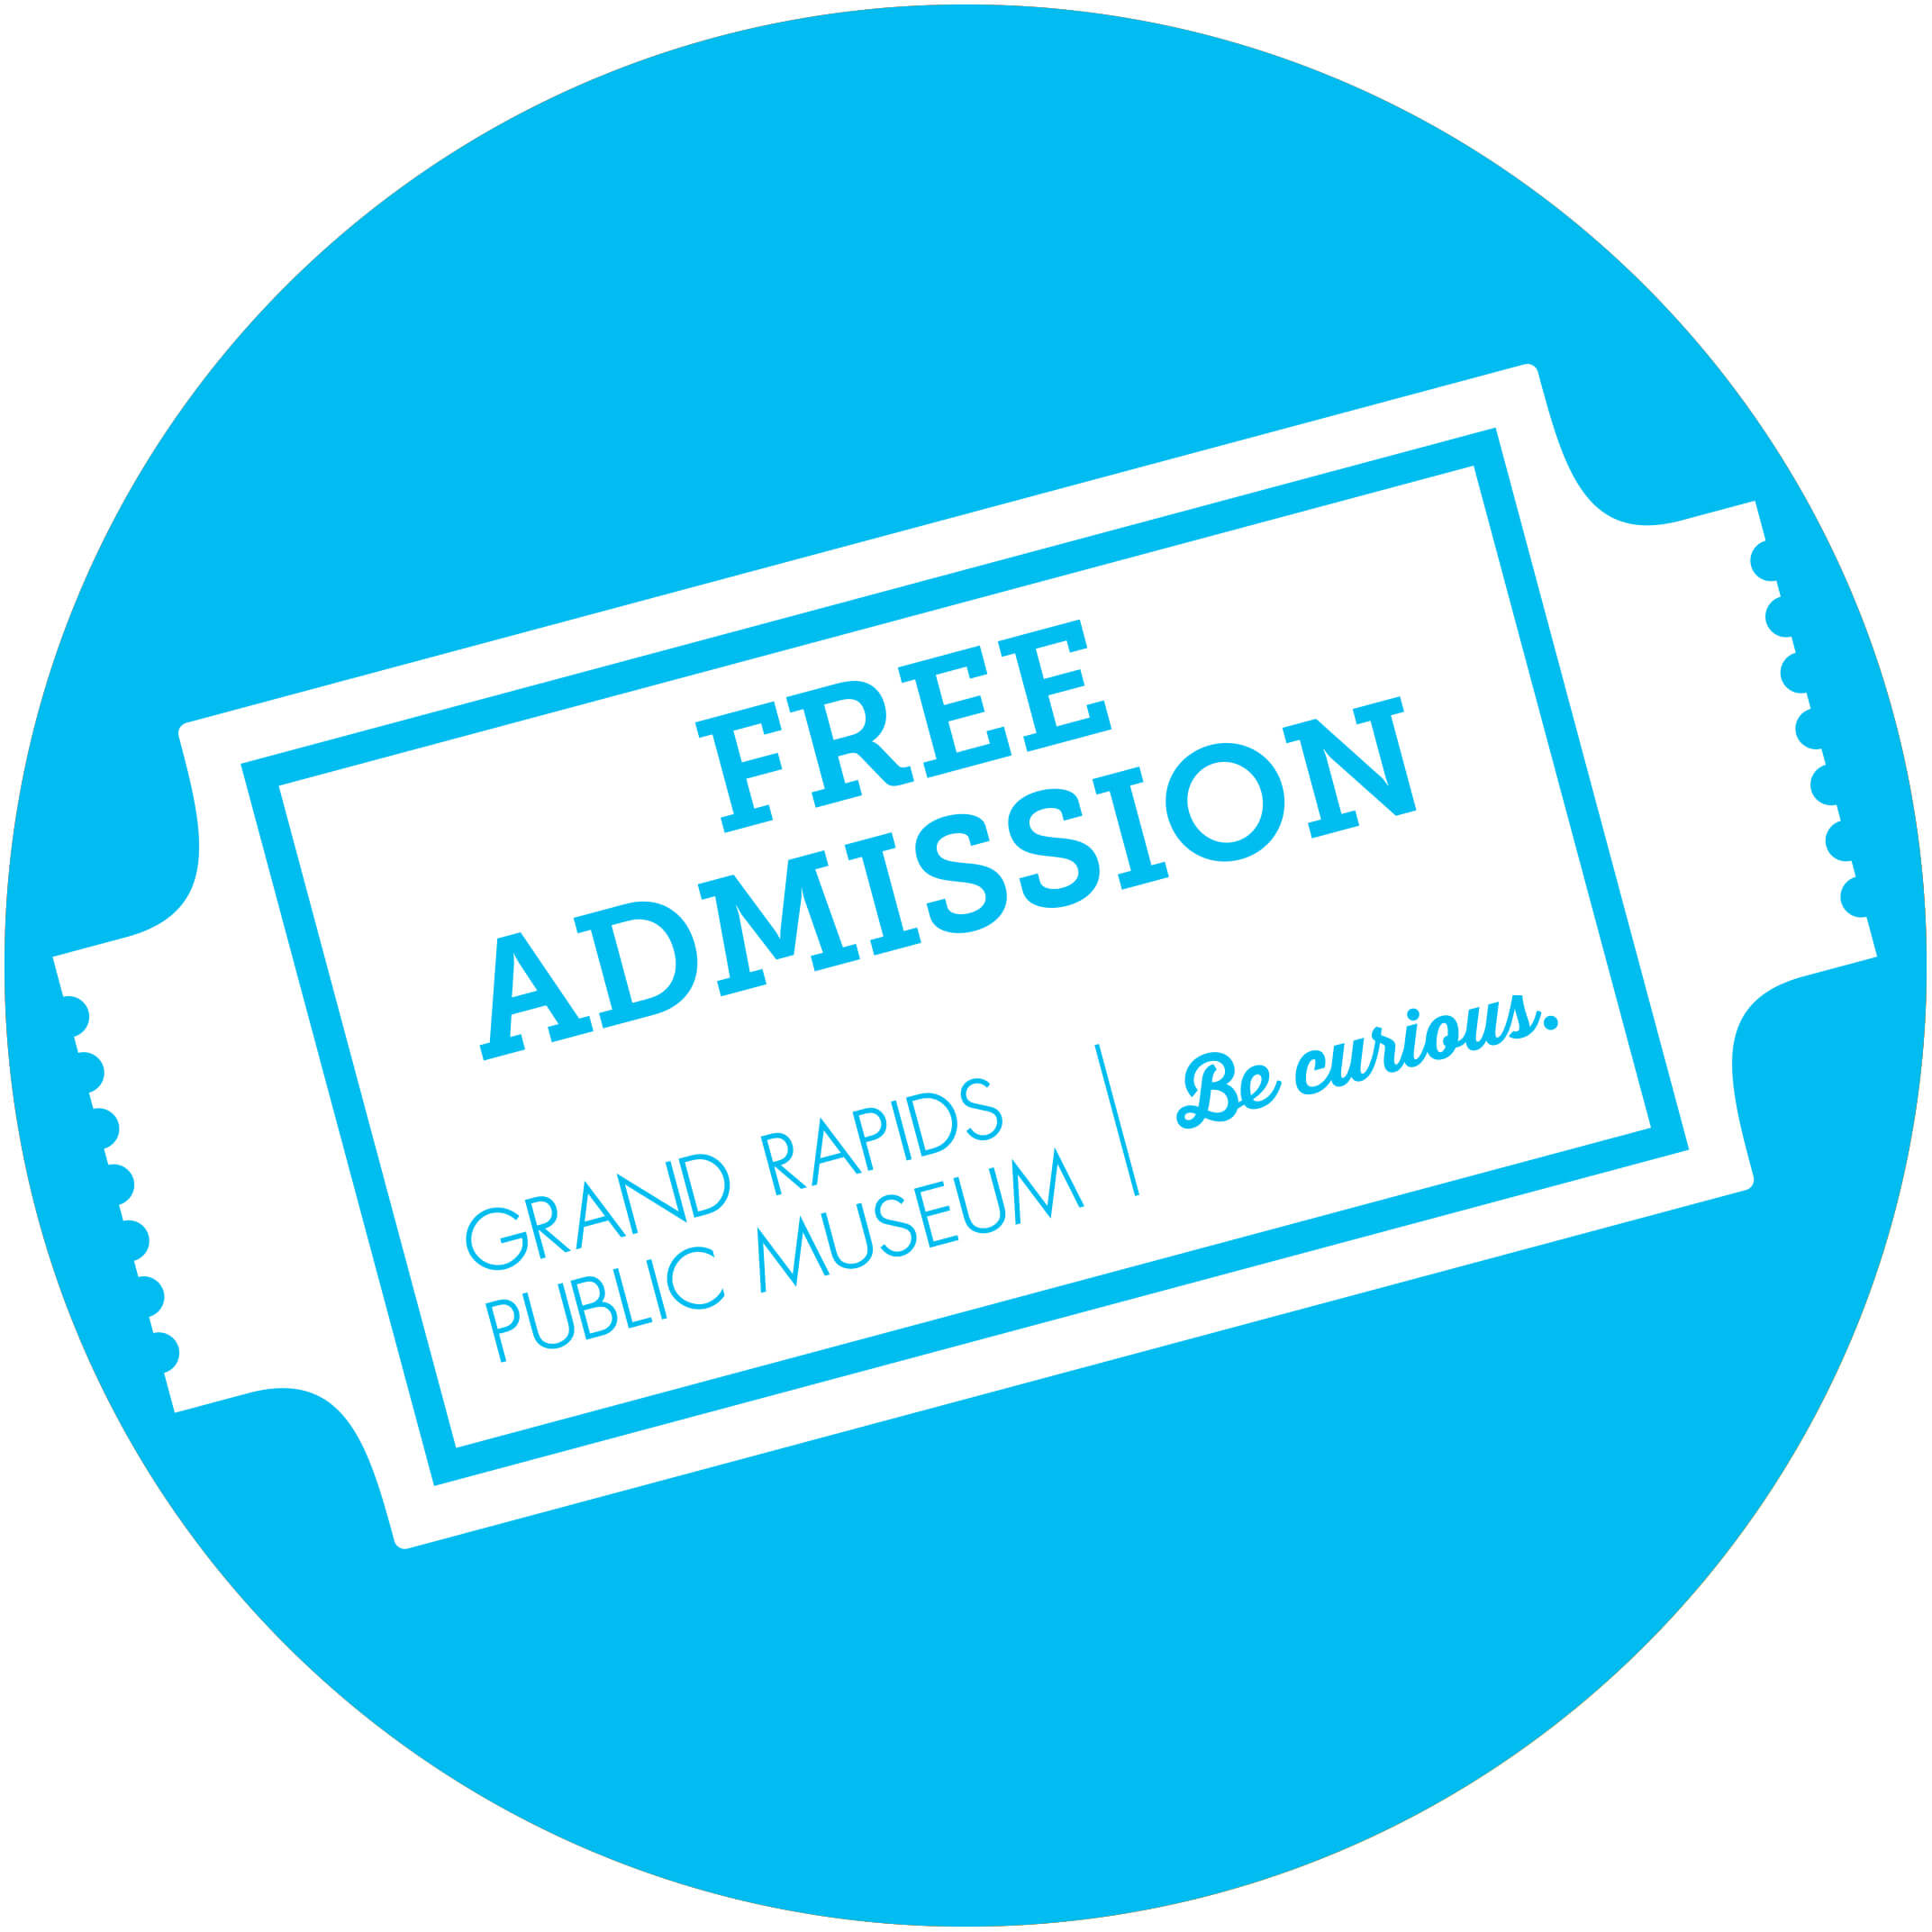 Be a Part of the Grand Rapids Public Museum – Grand Rapids Public Museum